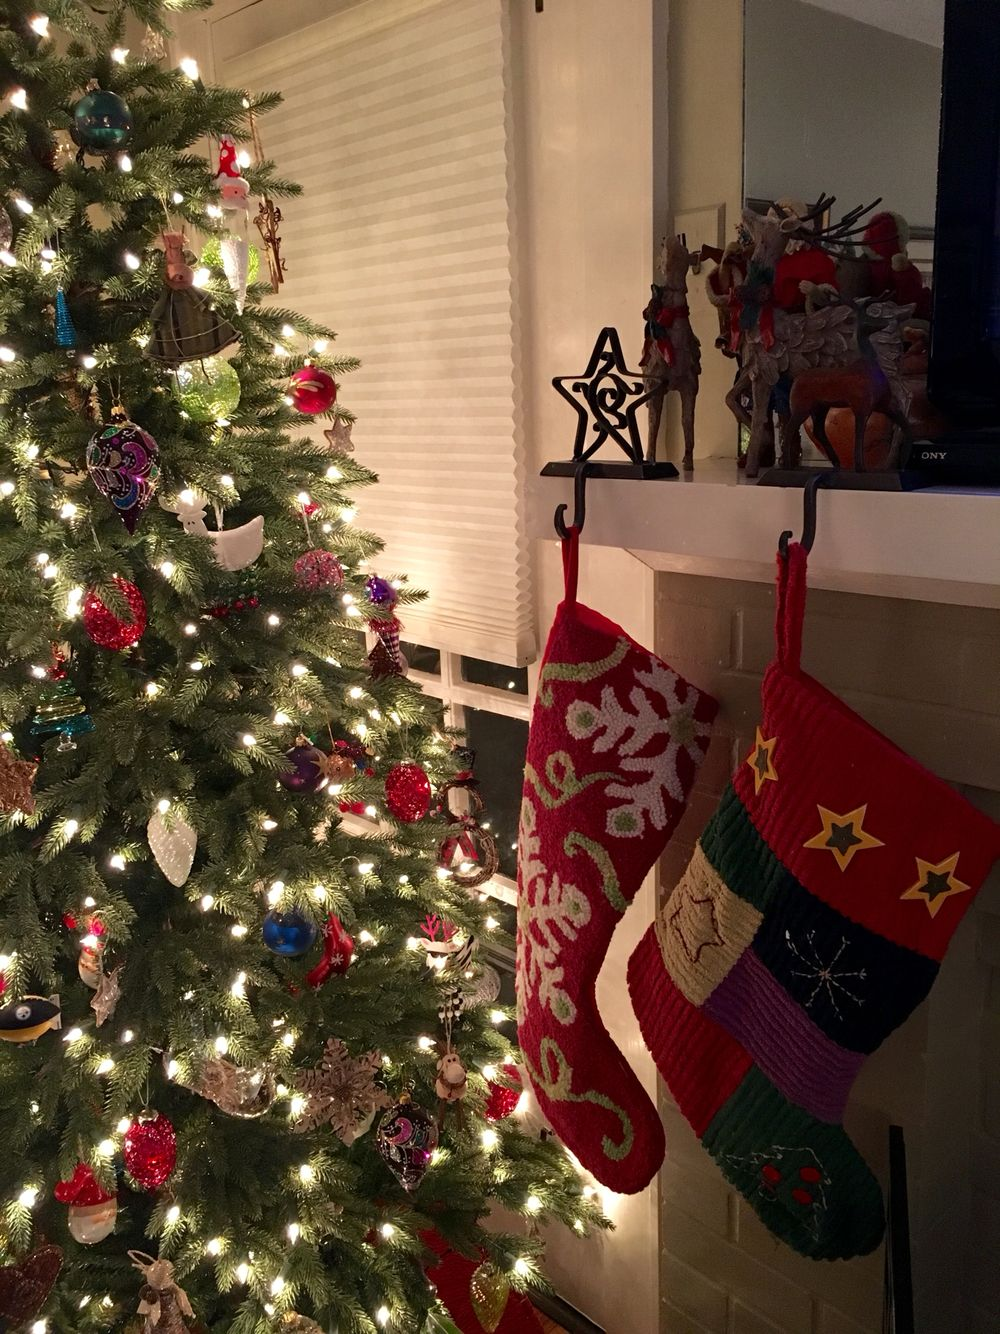 Christmas at the Speer Kalinosky house 2015